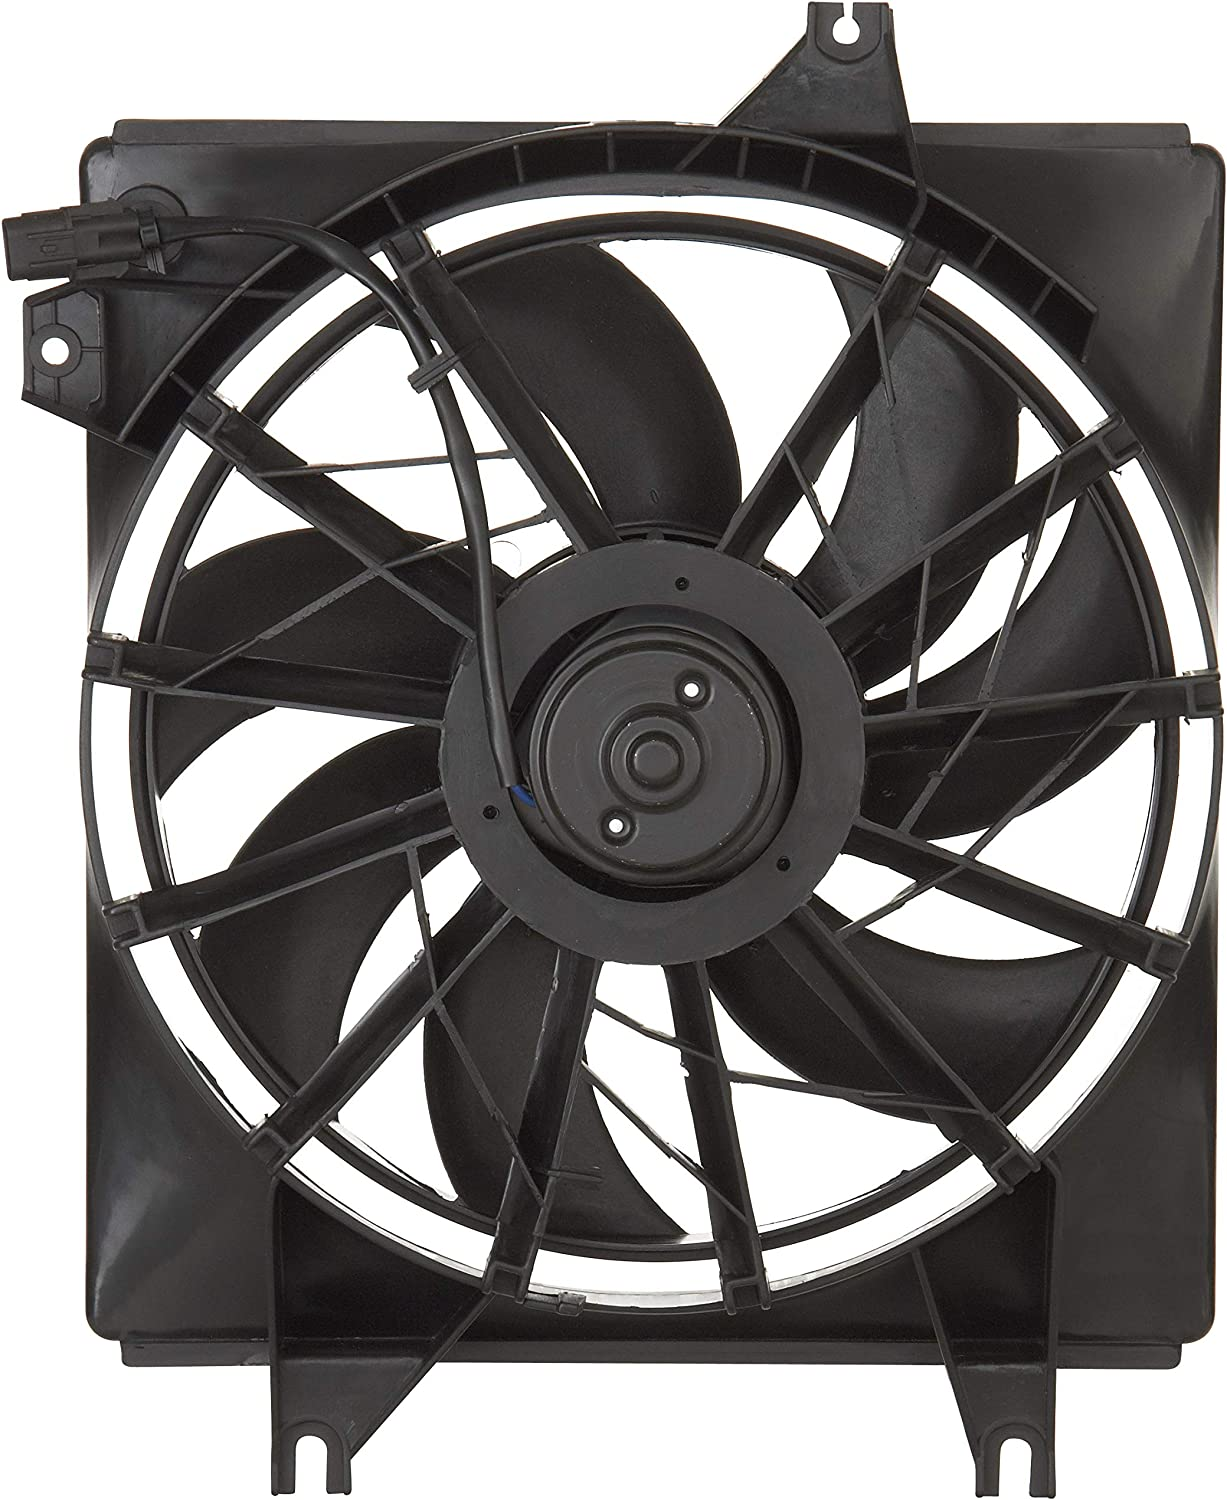 Spectra Premium CF16001 Engine Cooling Fan Assembly